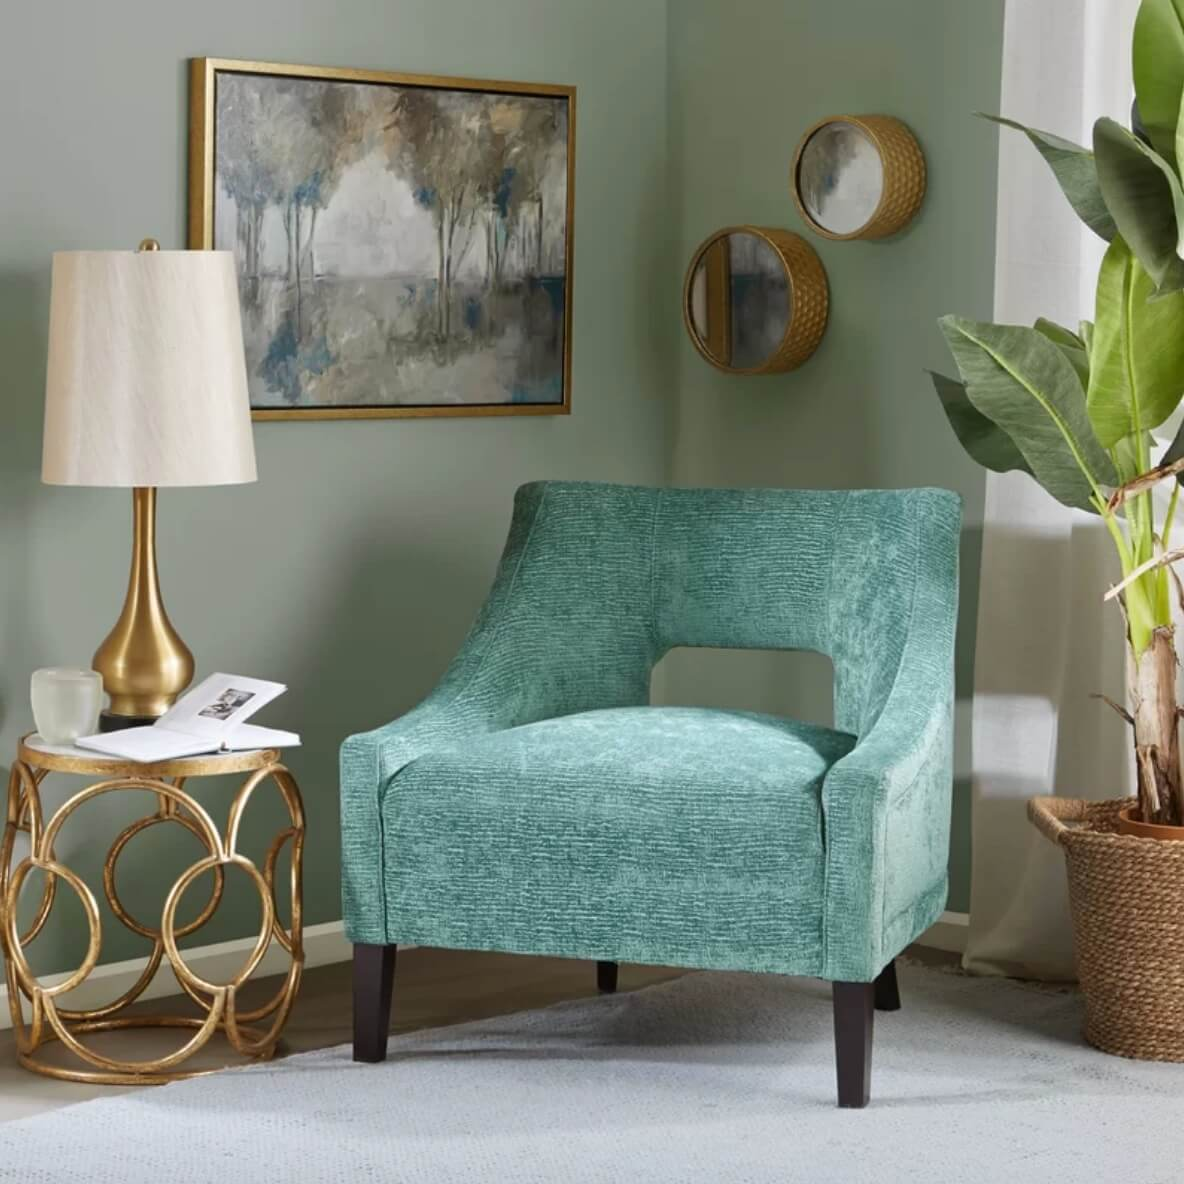 Modern teal chair